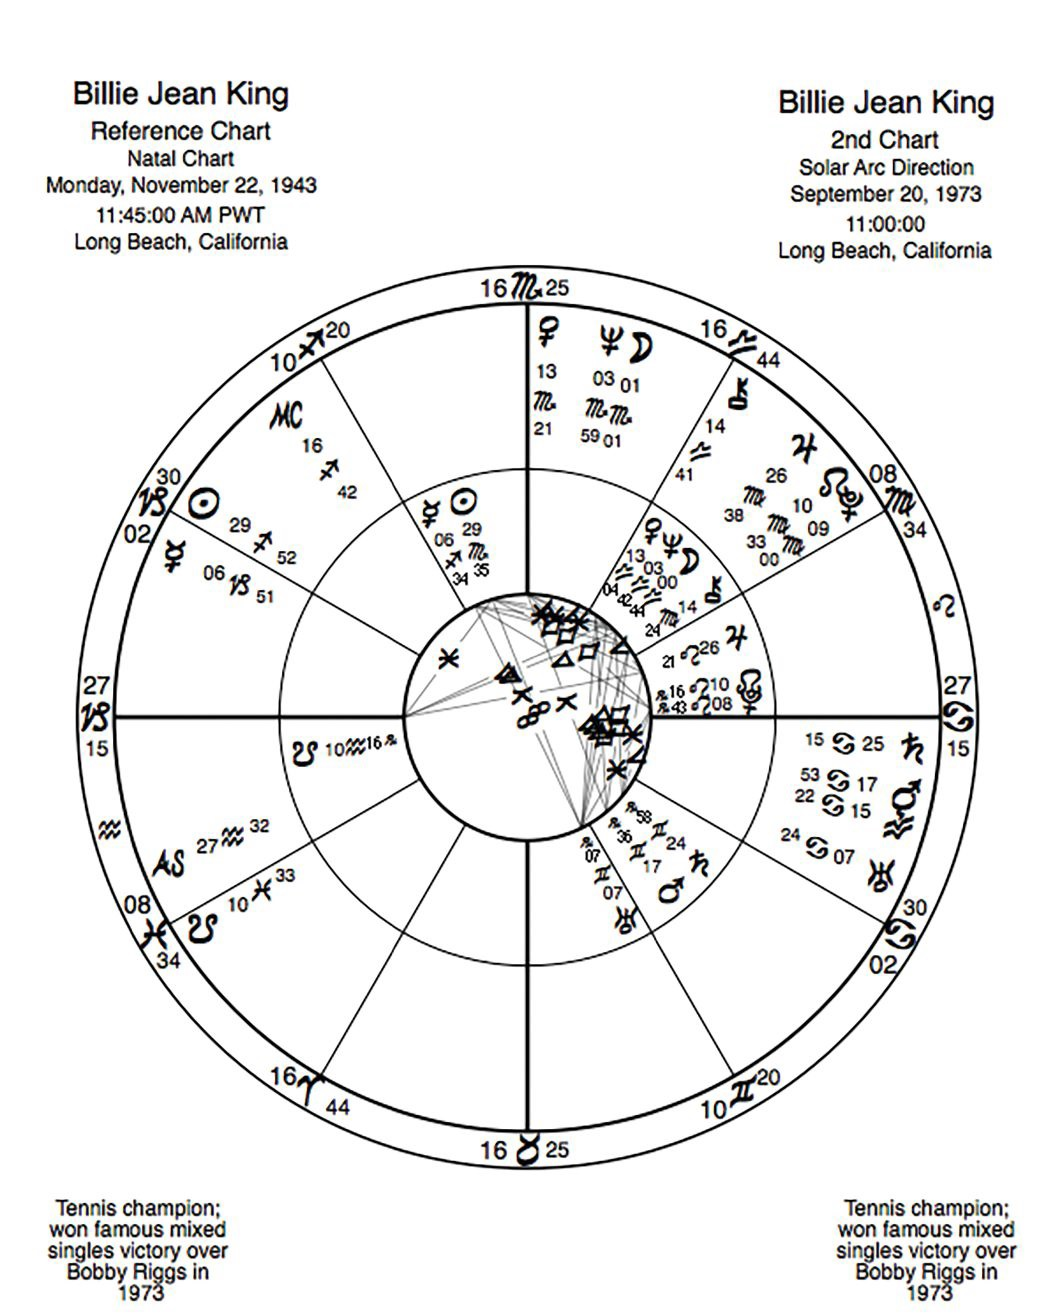 Frank c clifford the power degrees of the zodiac part 2 another master of the game billie jean king solararc chart provided the tennis legend has the sun at the final degree of scorpio geenschuldenfo Gallery